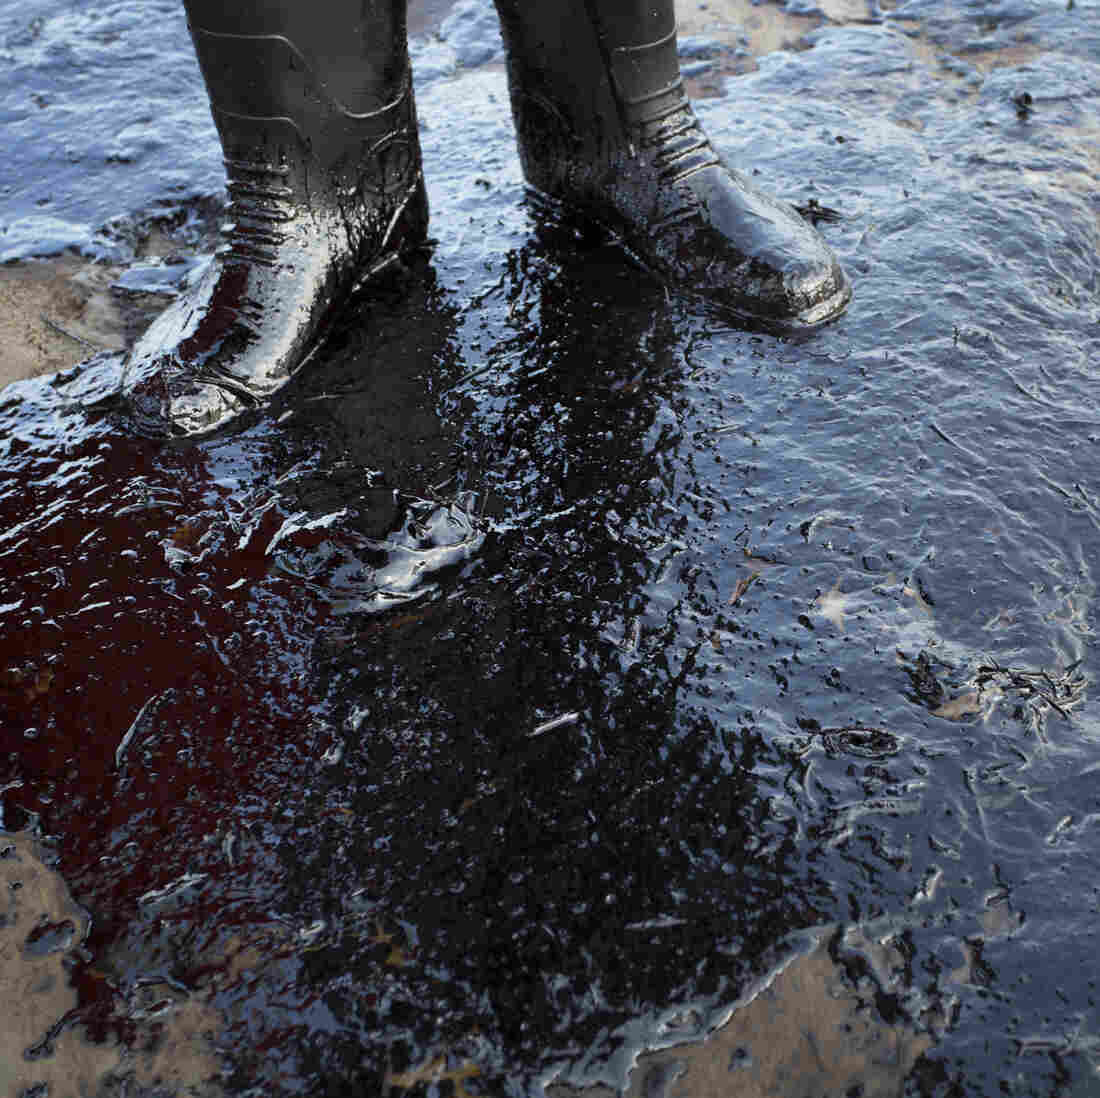 Oil fouls the shore north of Goleta, Calif., following a pipeline rupture near Refugio State Beach.